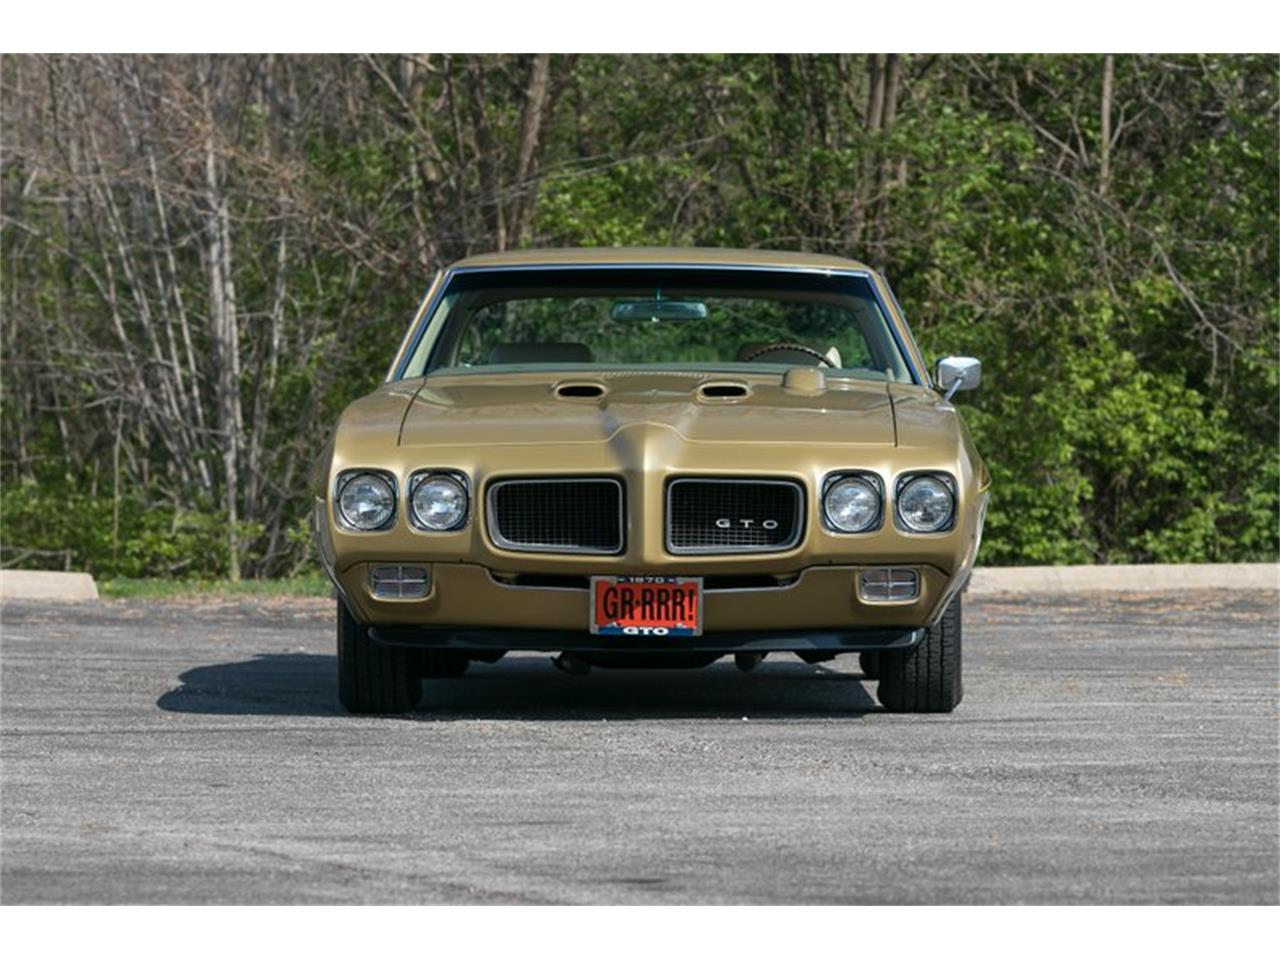 Large Picture of 1970 Pontiac GTO located in St. Charles Missouri - QKPX